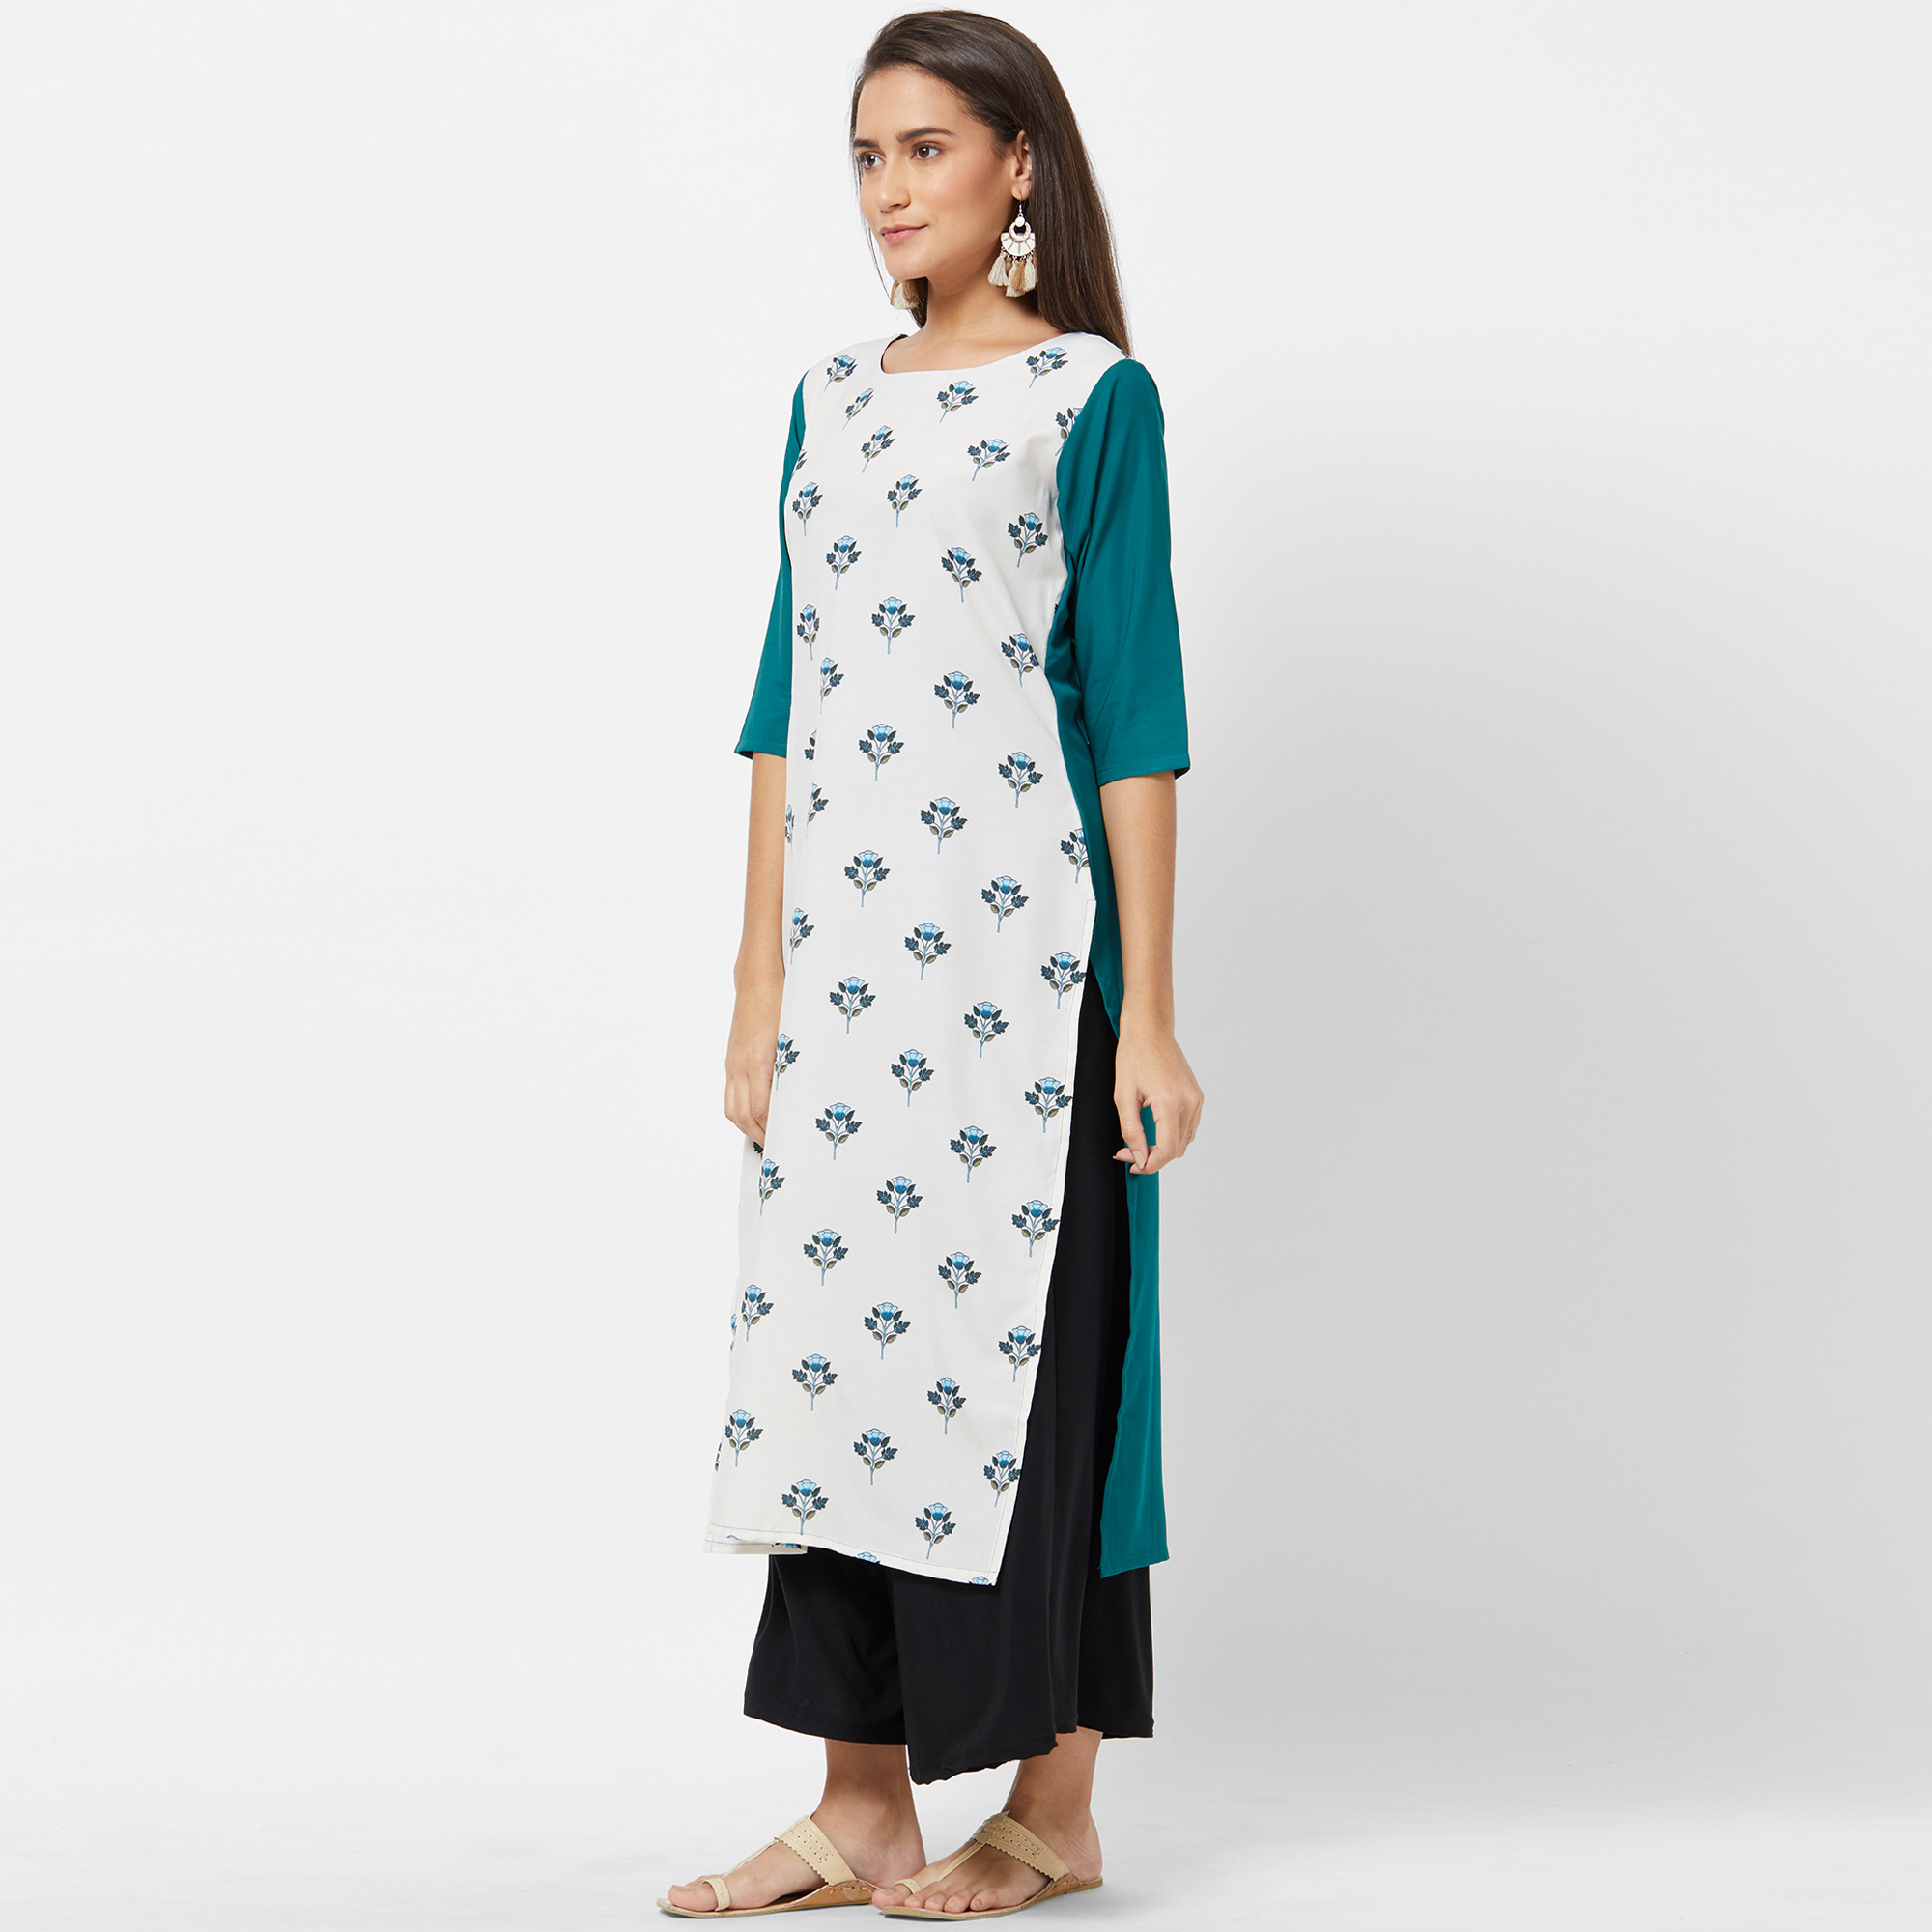 Alluring White Colored Casual Printed Crepe Kurti